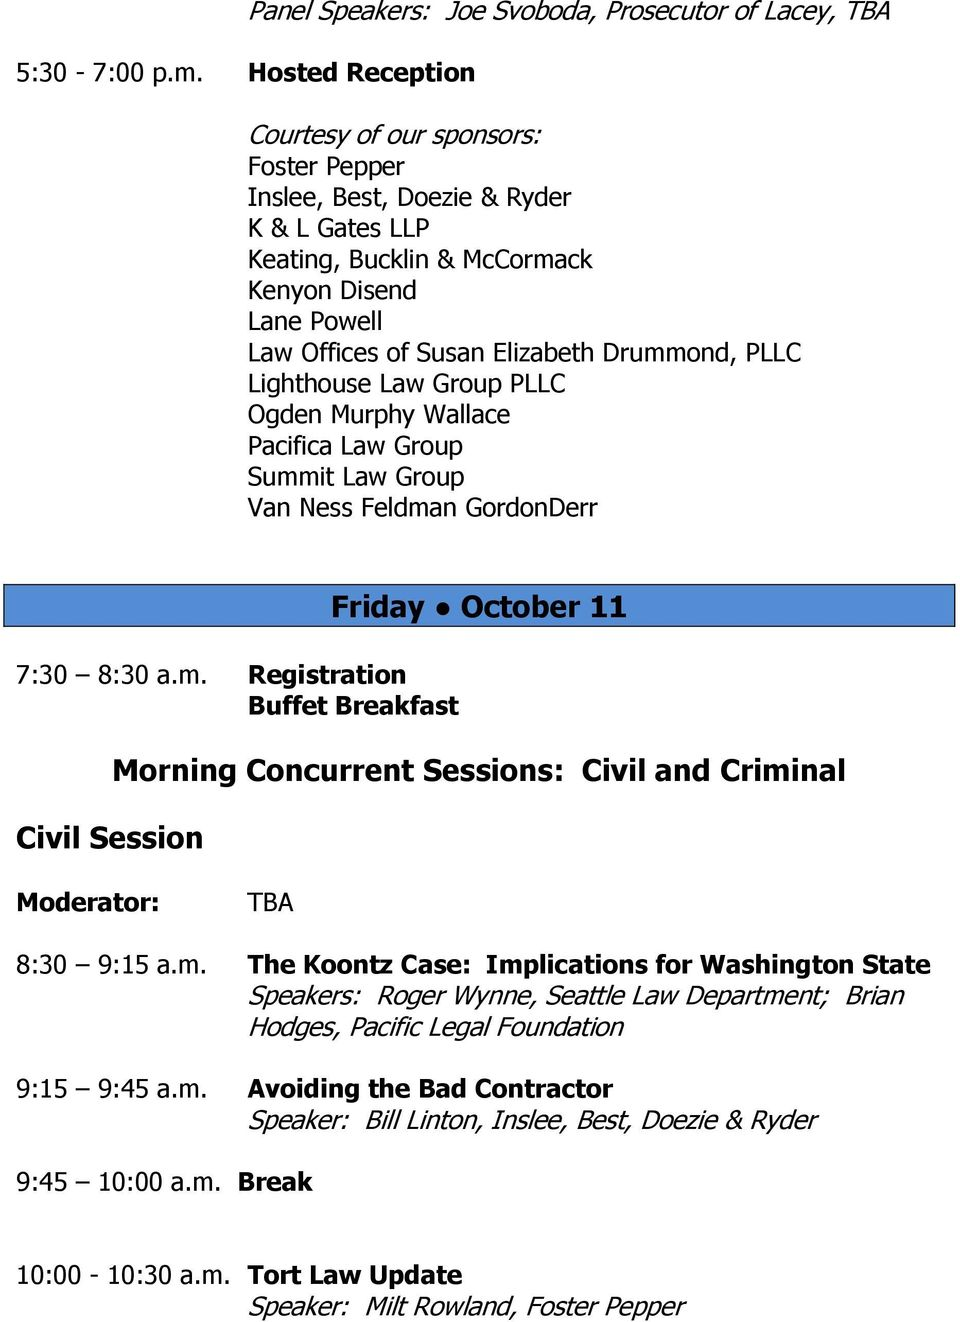 PLLC Lighthouse Law Group PLLC Ogden Murphy Wallace Pacifica Law Group Summit Law Group Van Ness Feldman GordonDerr 7:30 8:30 a.m. Registration Buffet Breakfast Civil Session Friday October 11 Morning Concurrent Sessions: Civil and Criminal 8:30 9:15 a.